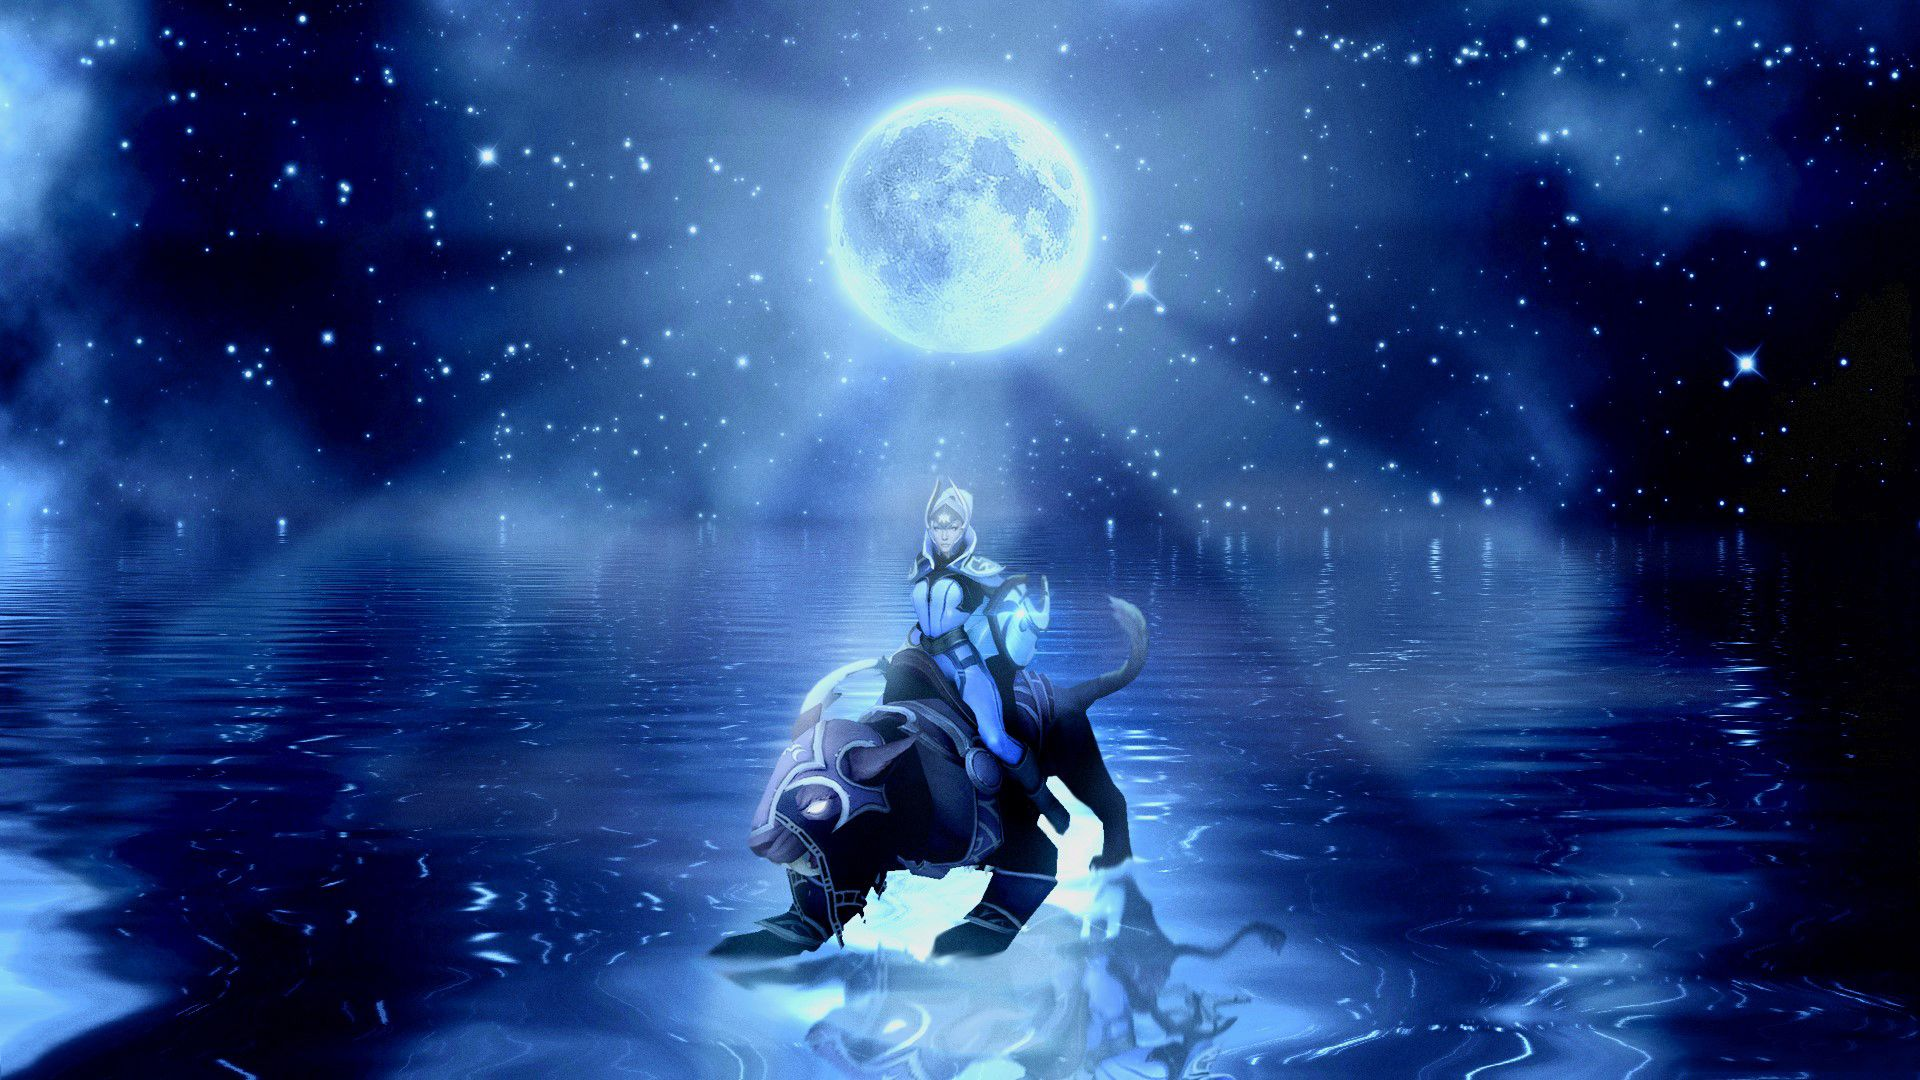 Pictures Dota Moon Warriors Fantasy Game Moon Magical Animals Luna Warrior